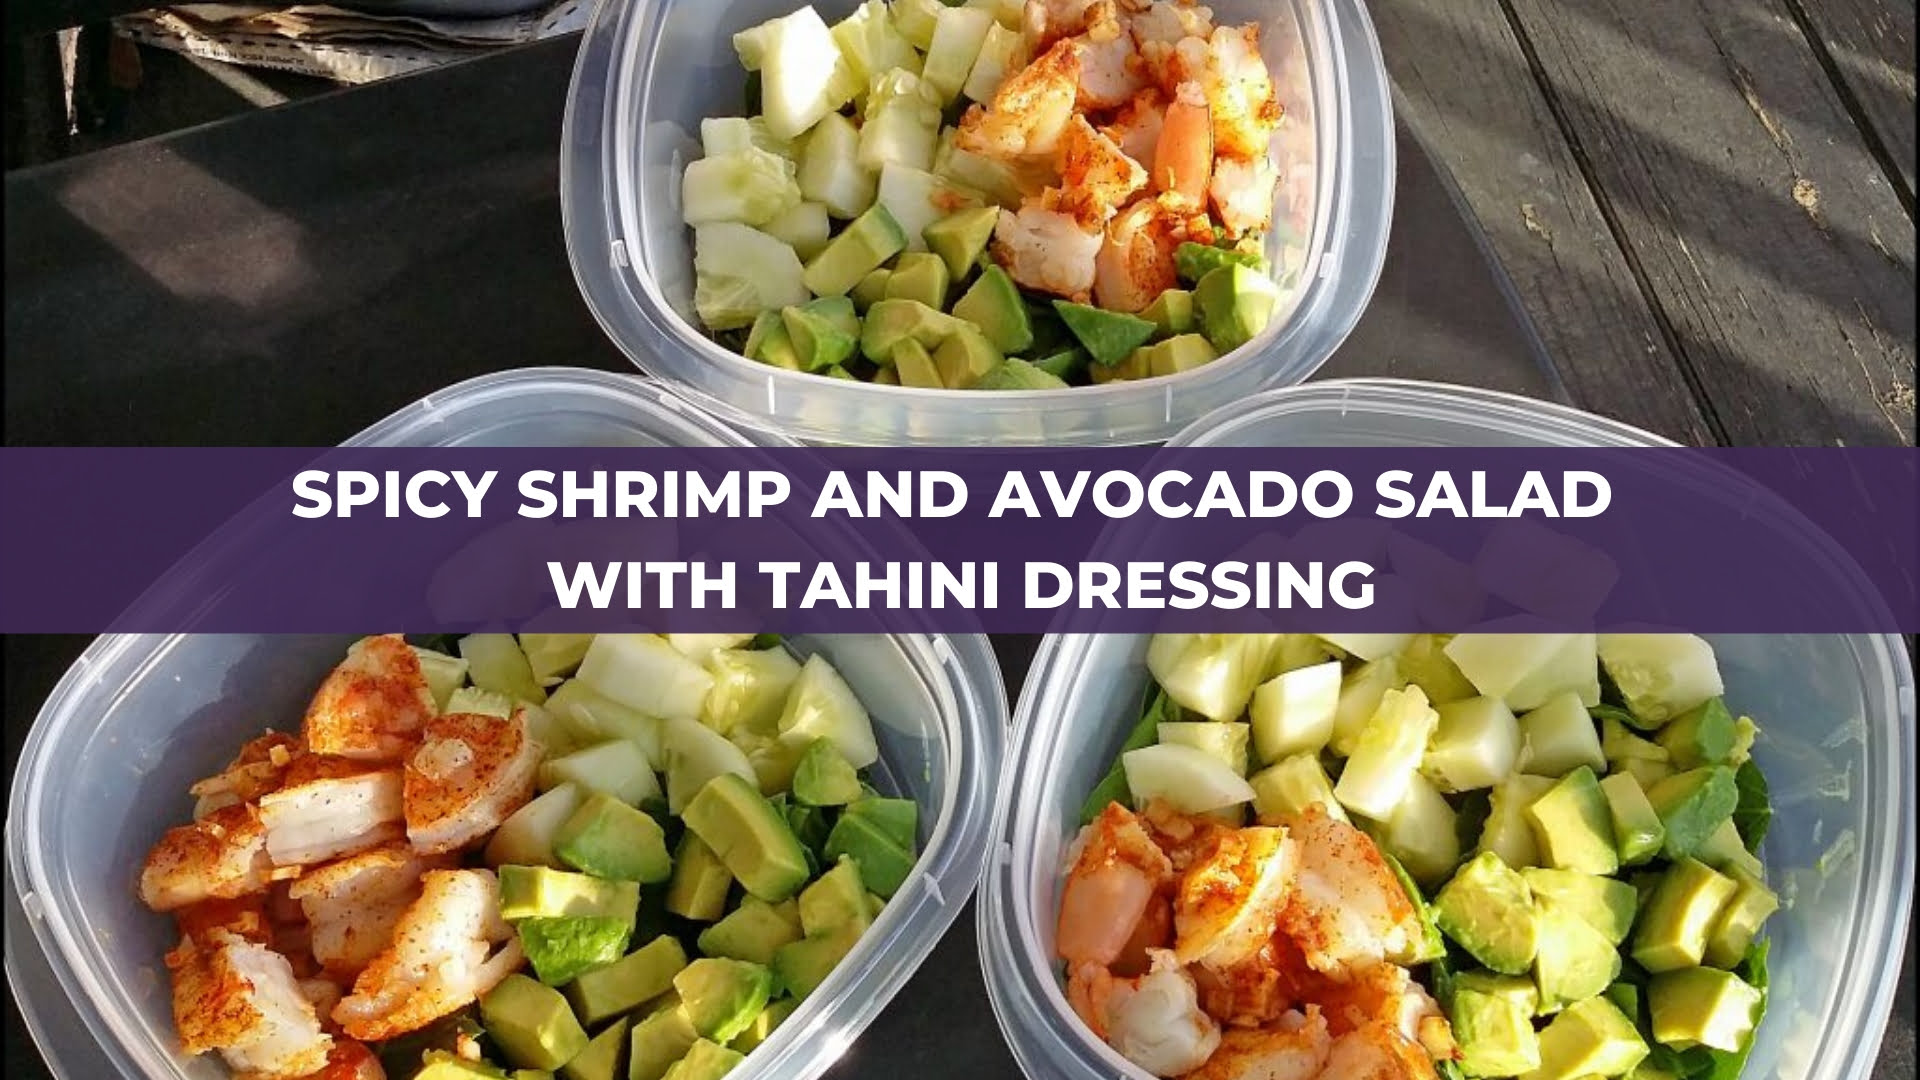 Spicy Shrimp and Avocado Salad with Tahini Dressing.